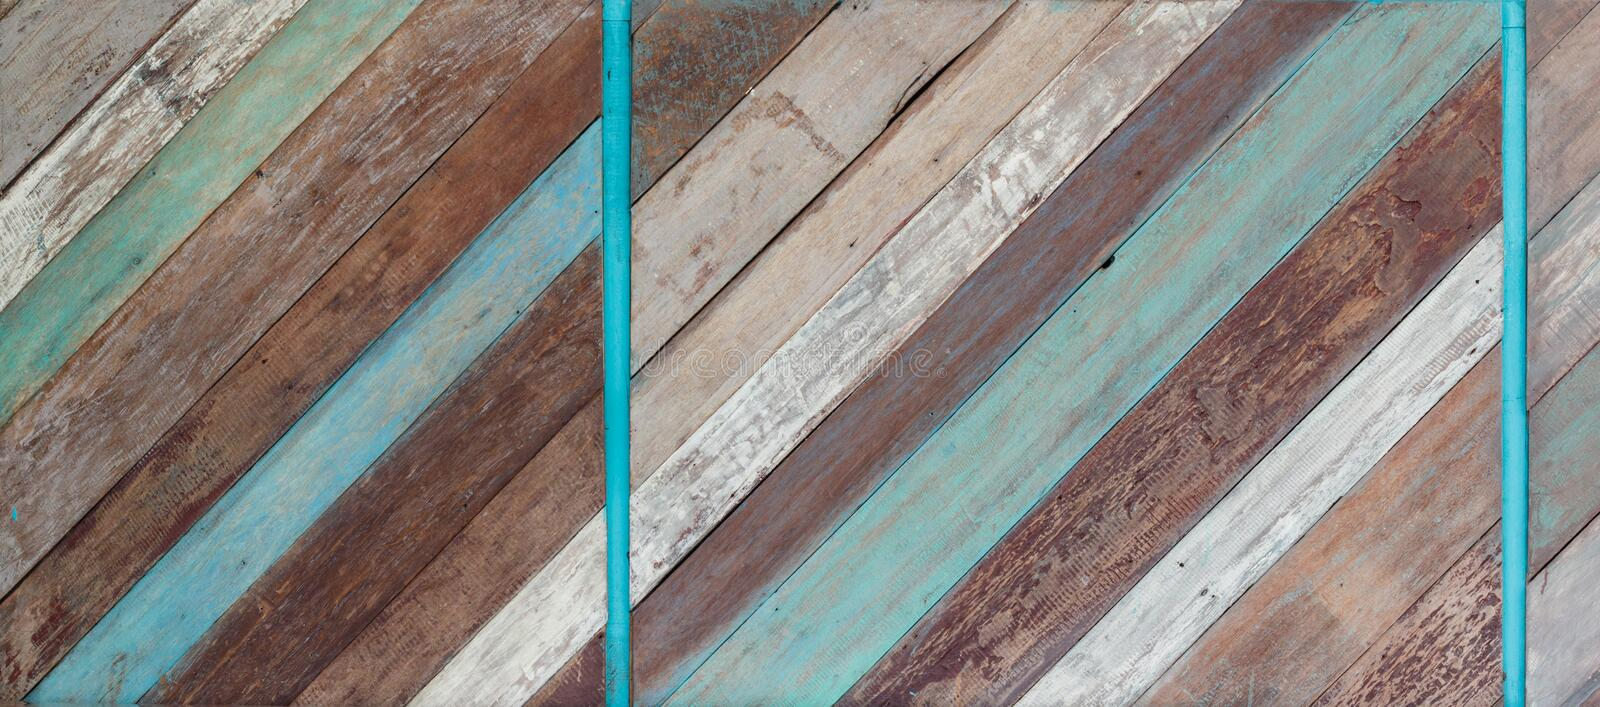 Old Painted Wood Background Texture. An old painted wood texture wall background with grain stock photos